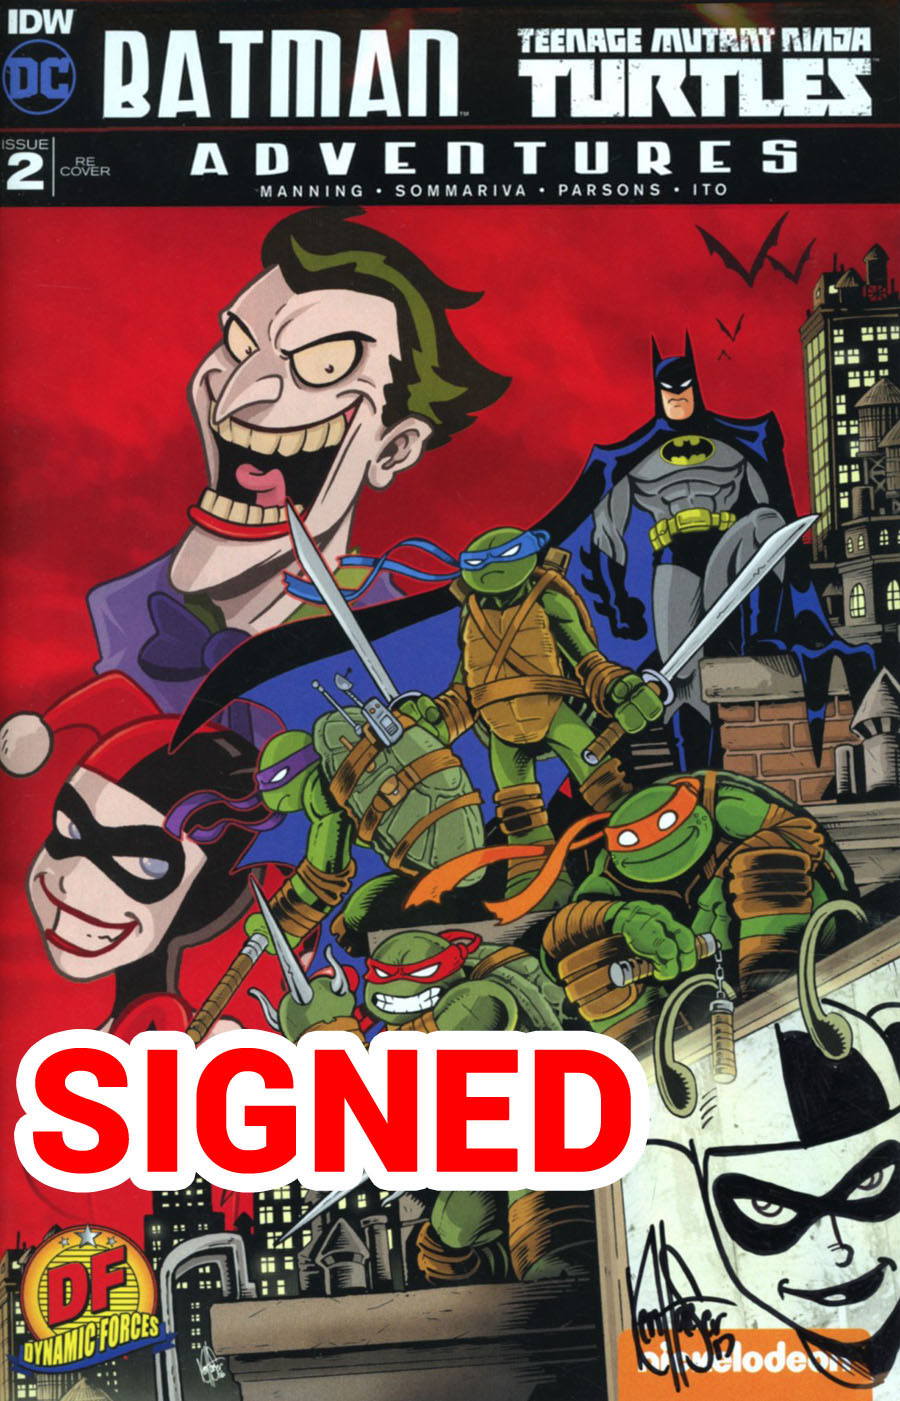 Batman Teenage Mutant Ninja Turtles Adventures #2 Cover G DF Exclusive Signed & Remarked By Ken Haeser With A Harley Quinn Sketch Variant Cover